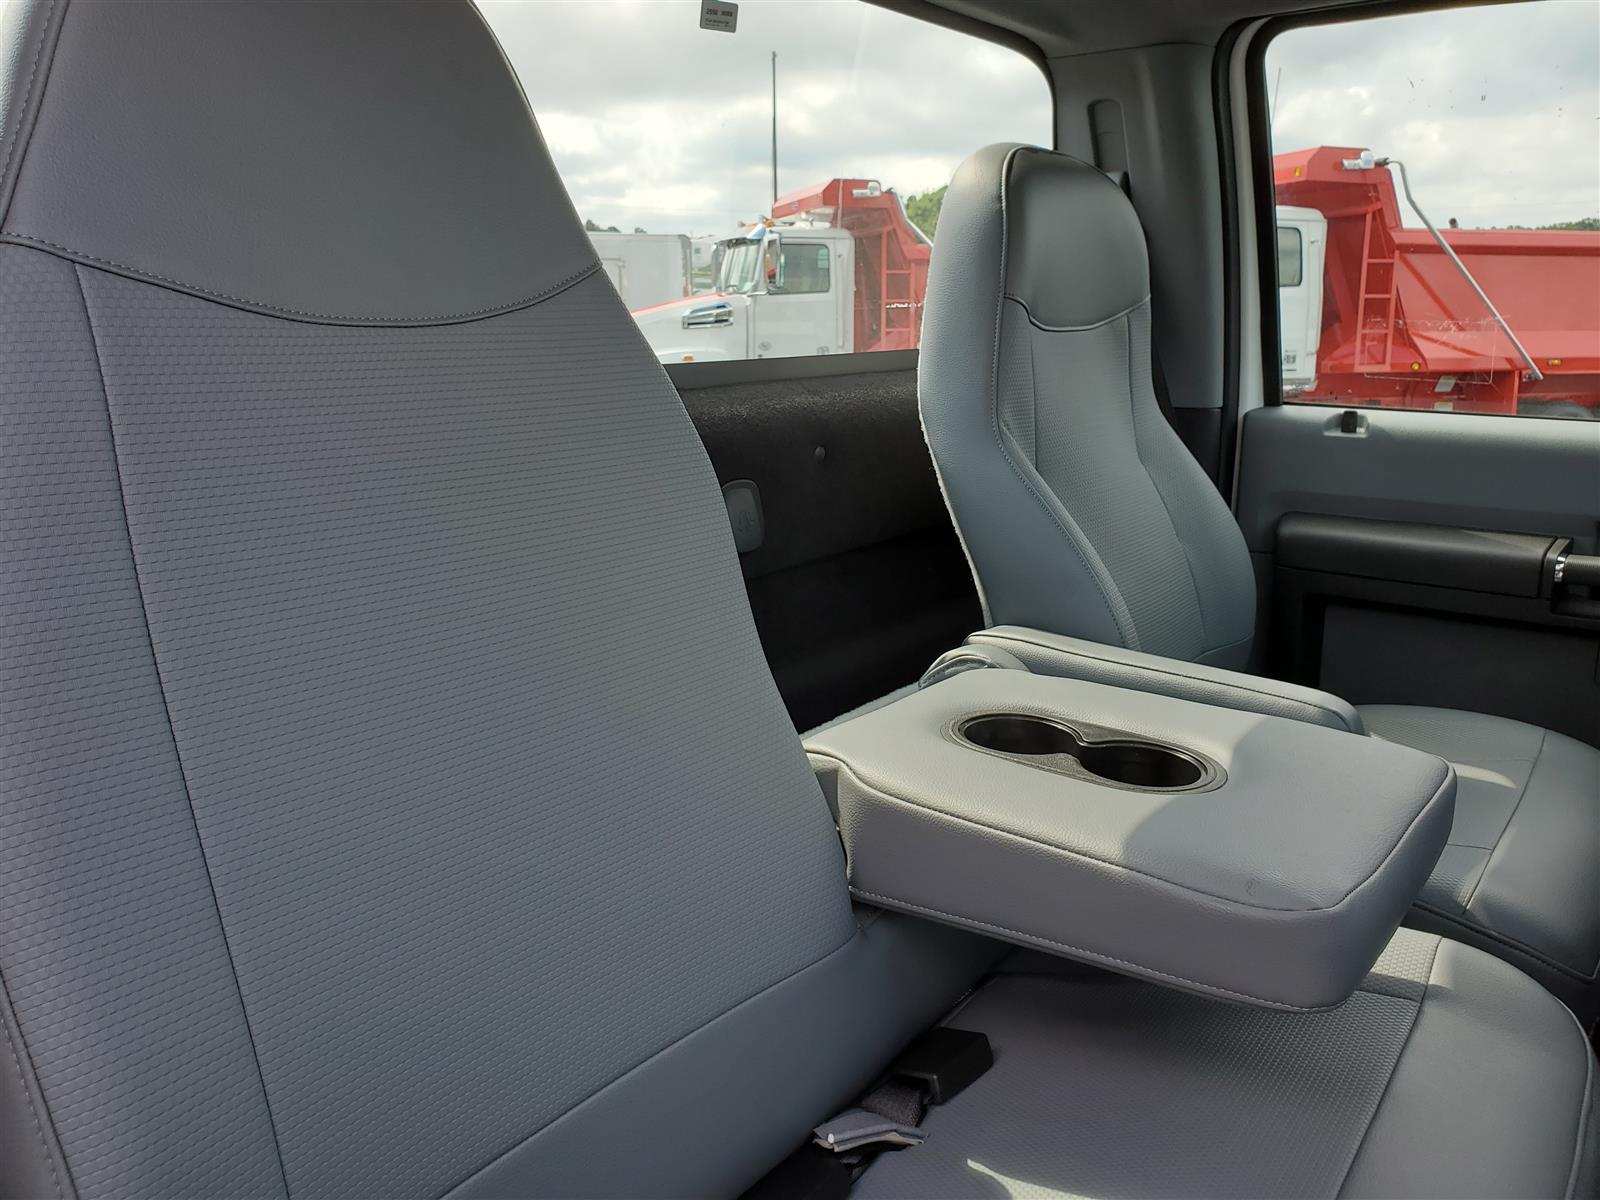 2021 Ford F-650 Regular Cab DRW 4x2, Cab Chassis #MDF02554 - photo 10